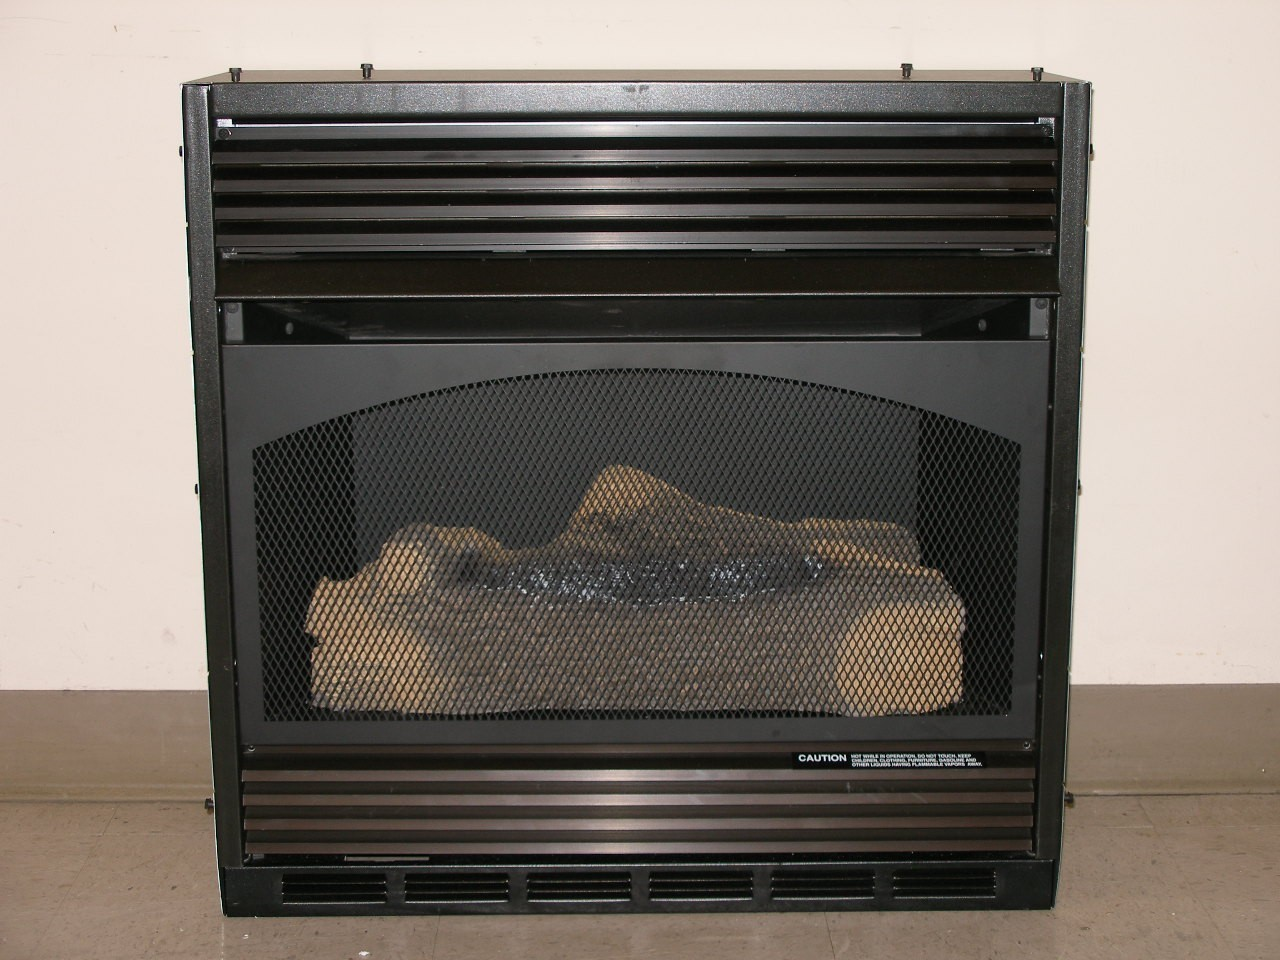 Cool Cpsc Desa Heating Products Announce Recall Of Compact Gas Download Free Architecture Designs Scobabritishbridgeorg